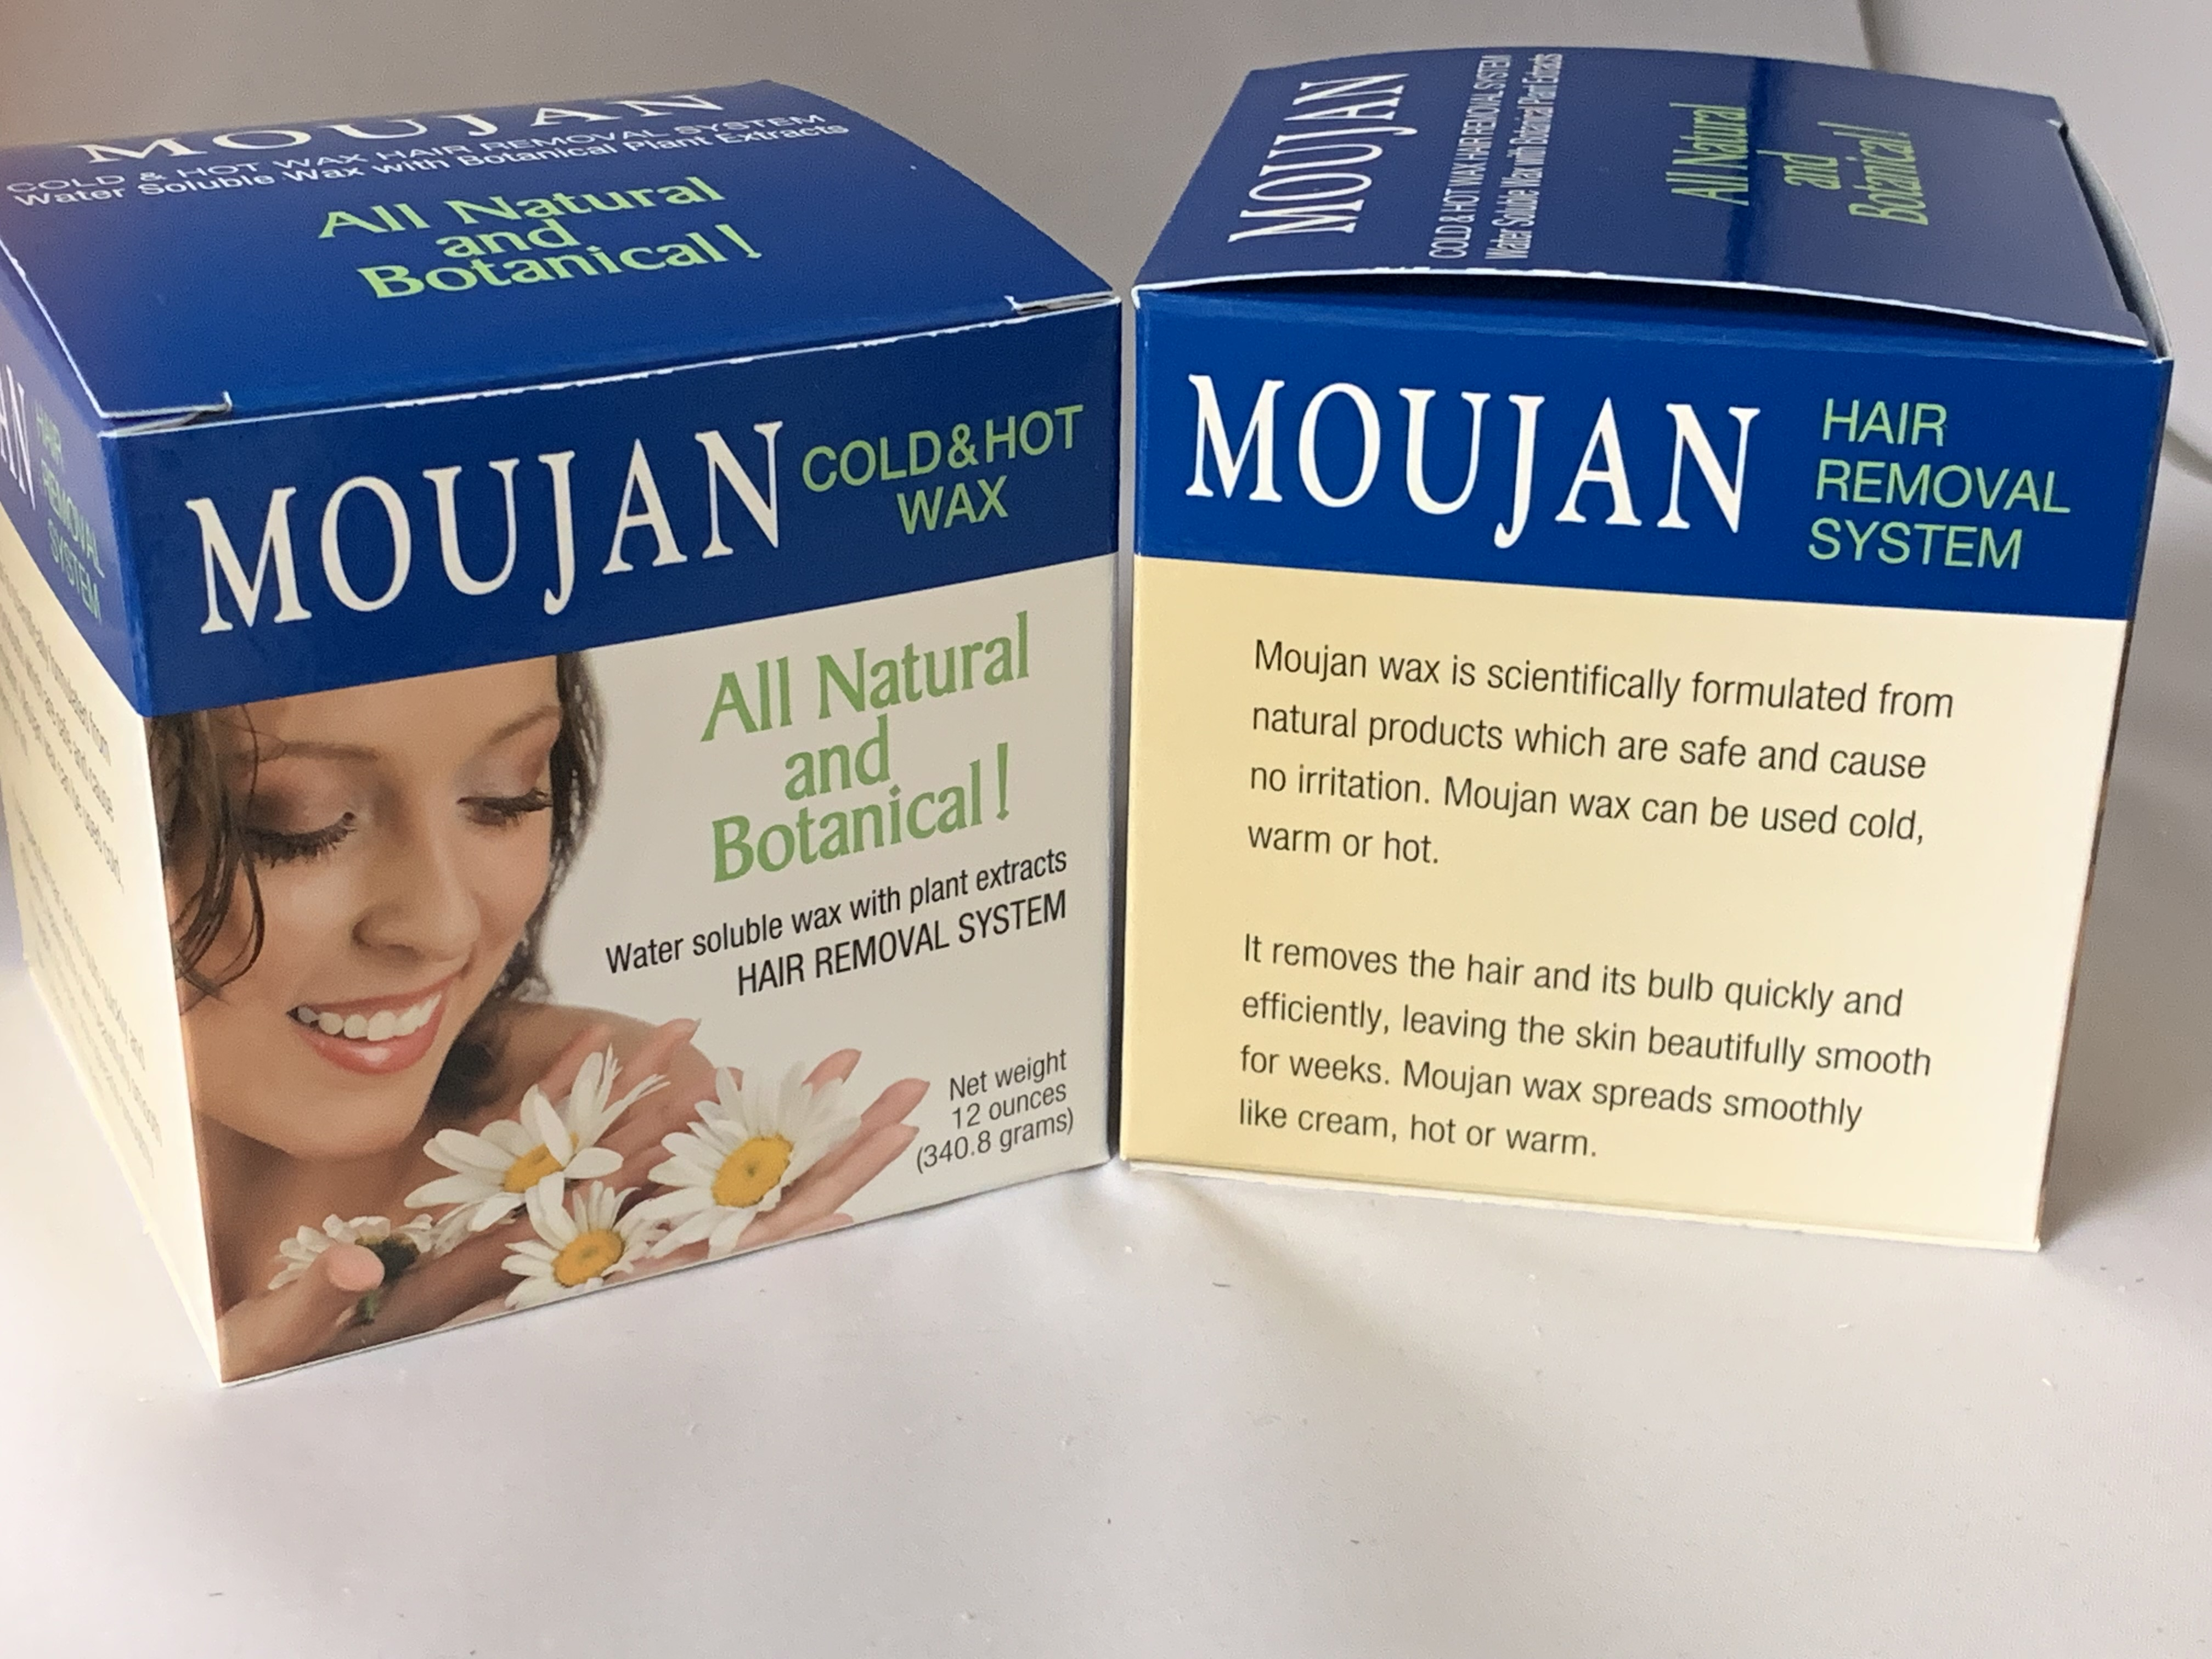 Moujan Cold And Hot Wax Kit 12 Oz Multi Pack Moujan Natural